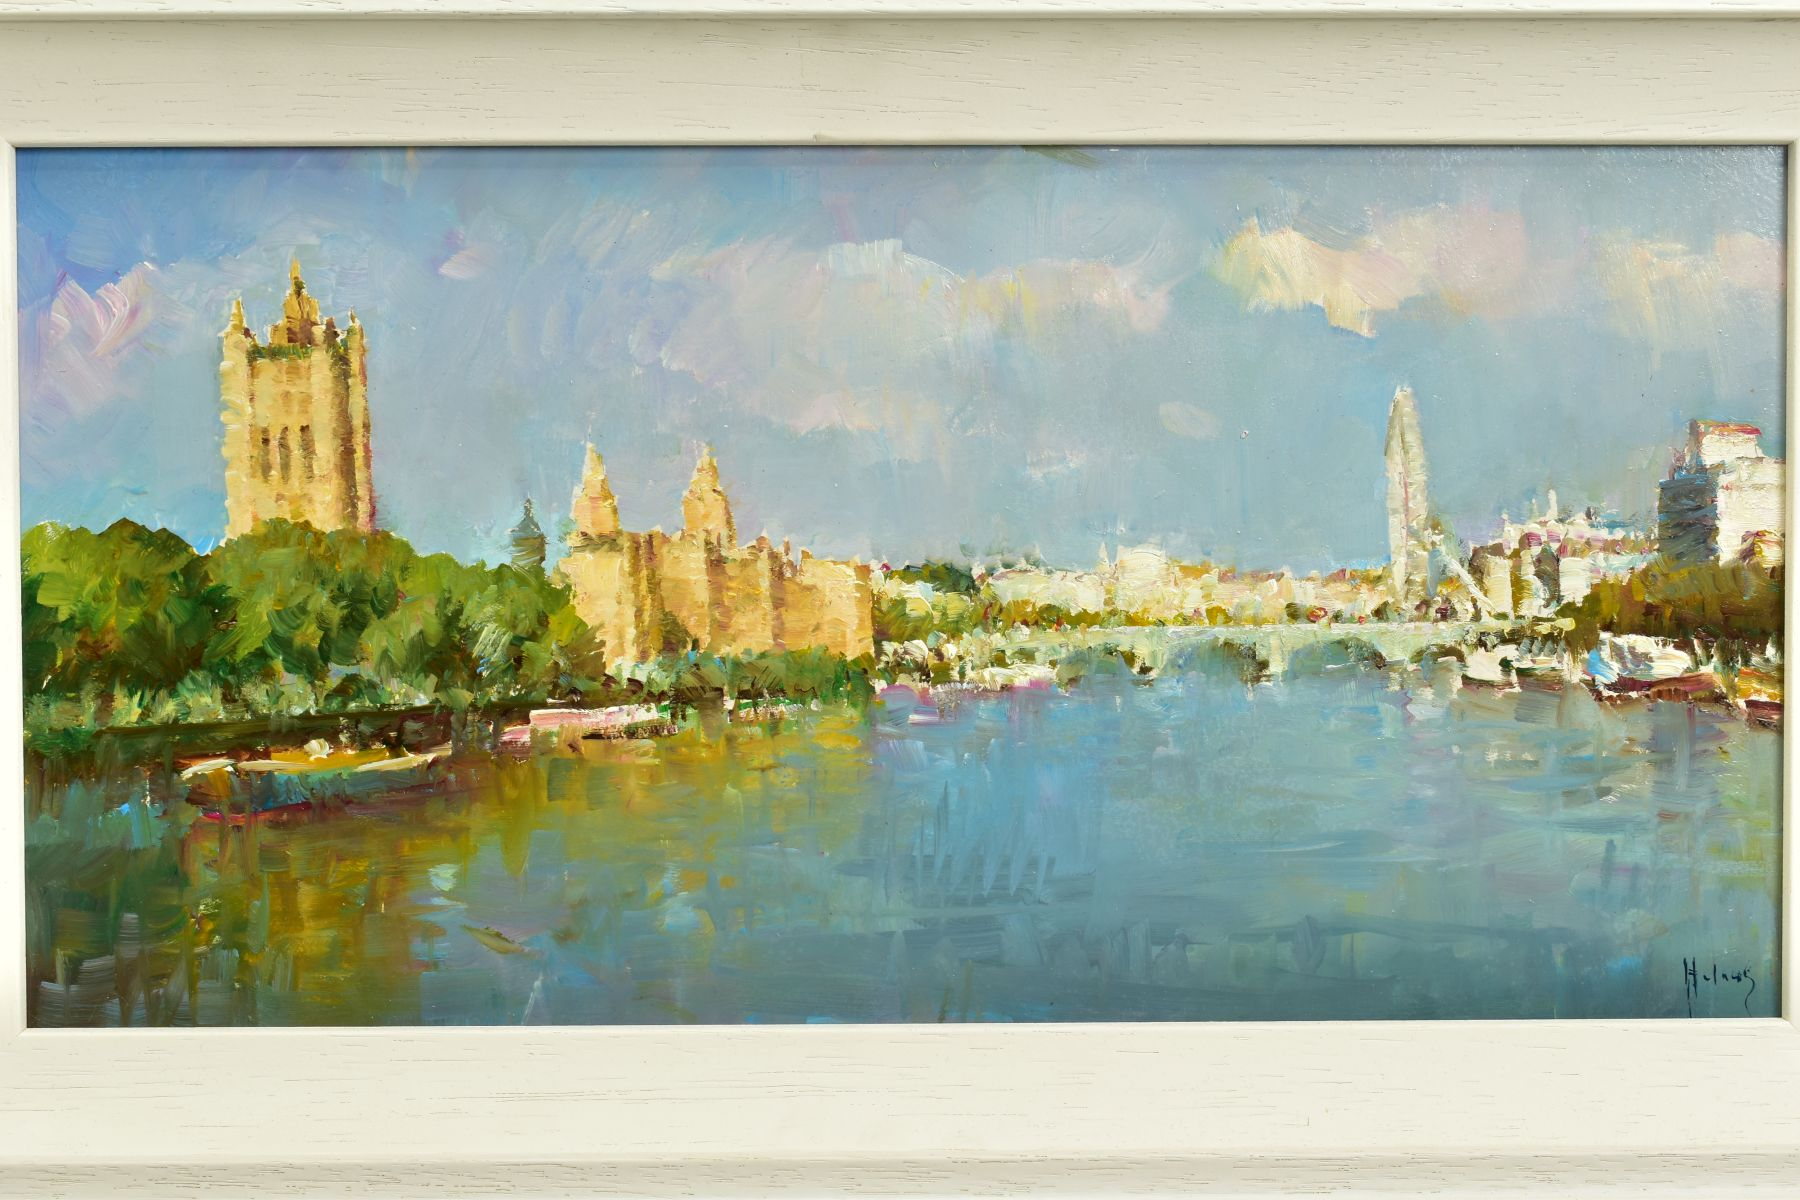 HELIOS GISBERT (SPANISH 1958), 'The Thames, London II', an impressionist view of a London skyline, - Image 2 of 5